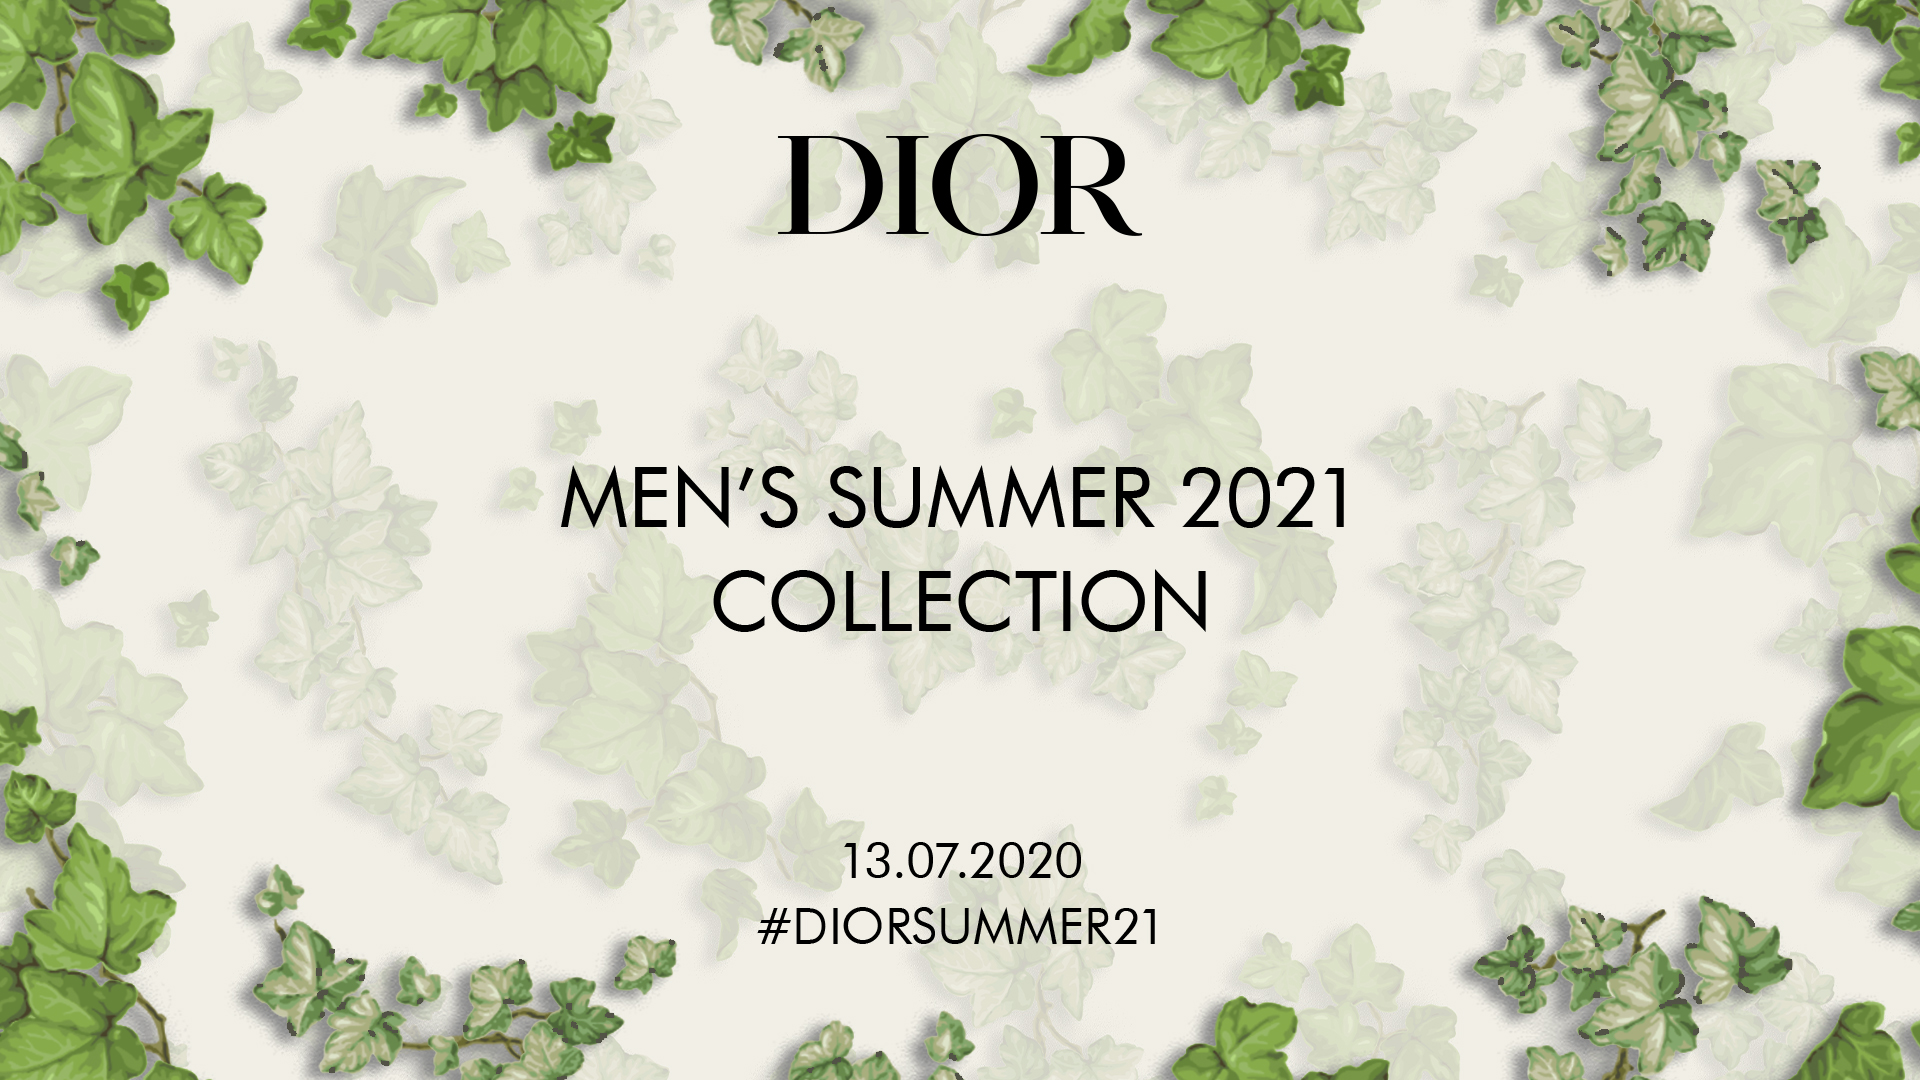 Watch The Dior Men's Summer 2021 Collection Live